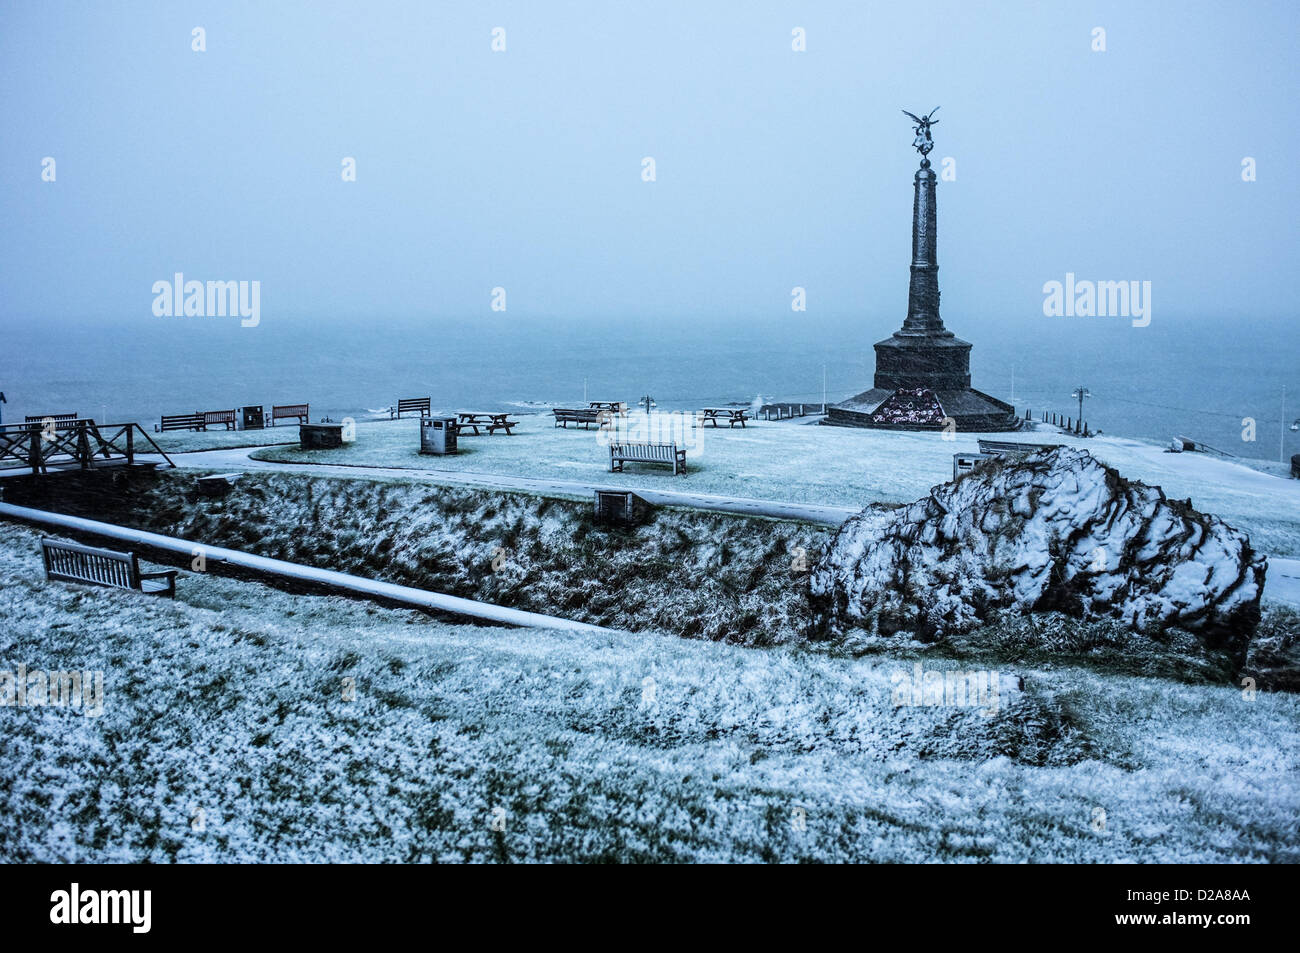 Aberystwyth, Wales, UK. 18th January 2013.     Some snowy weather but Aberystwyth on the west coast of Wales escapes - Stock Image